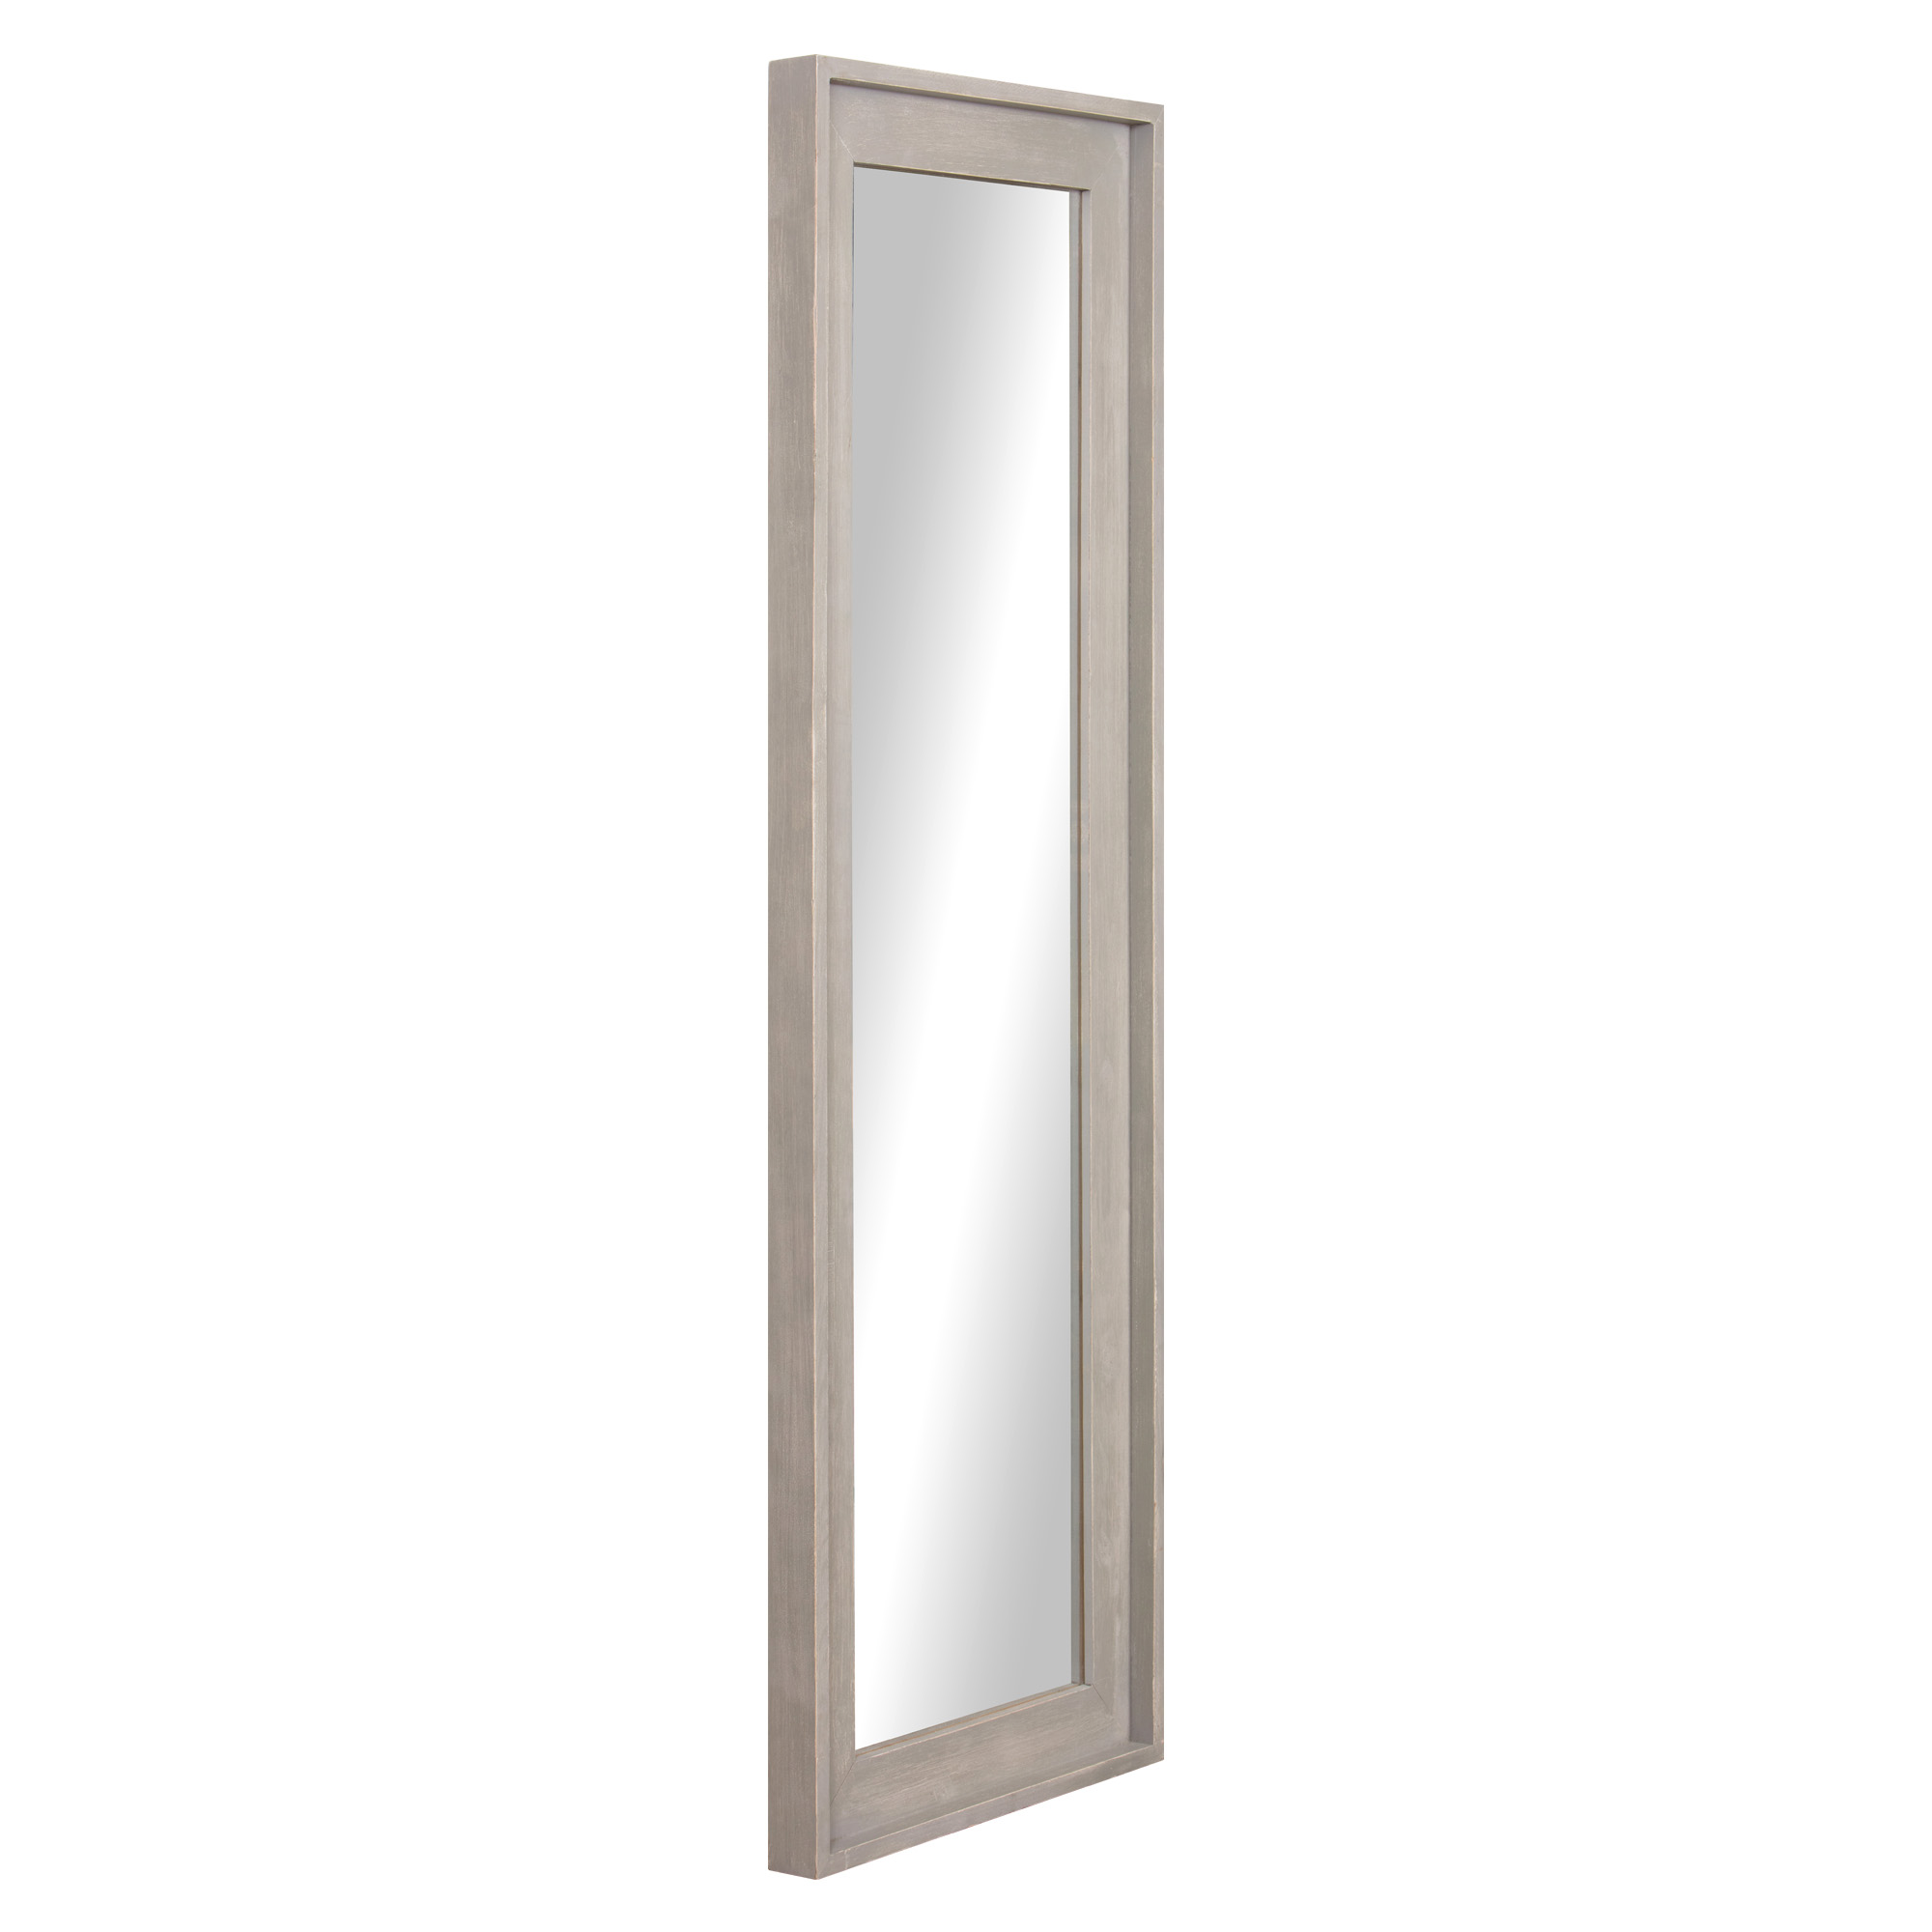 Light Grey Wood Framed Full Length Wall Or Leaner Mirror 19 X57 By Patton Wall Decor Walmart Com Walmart Com